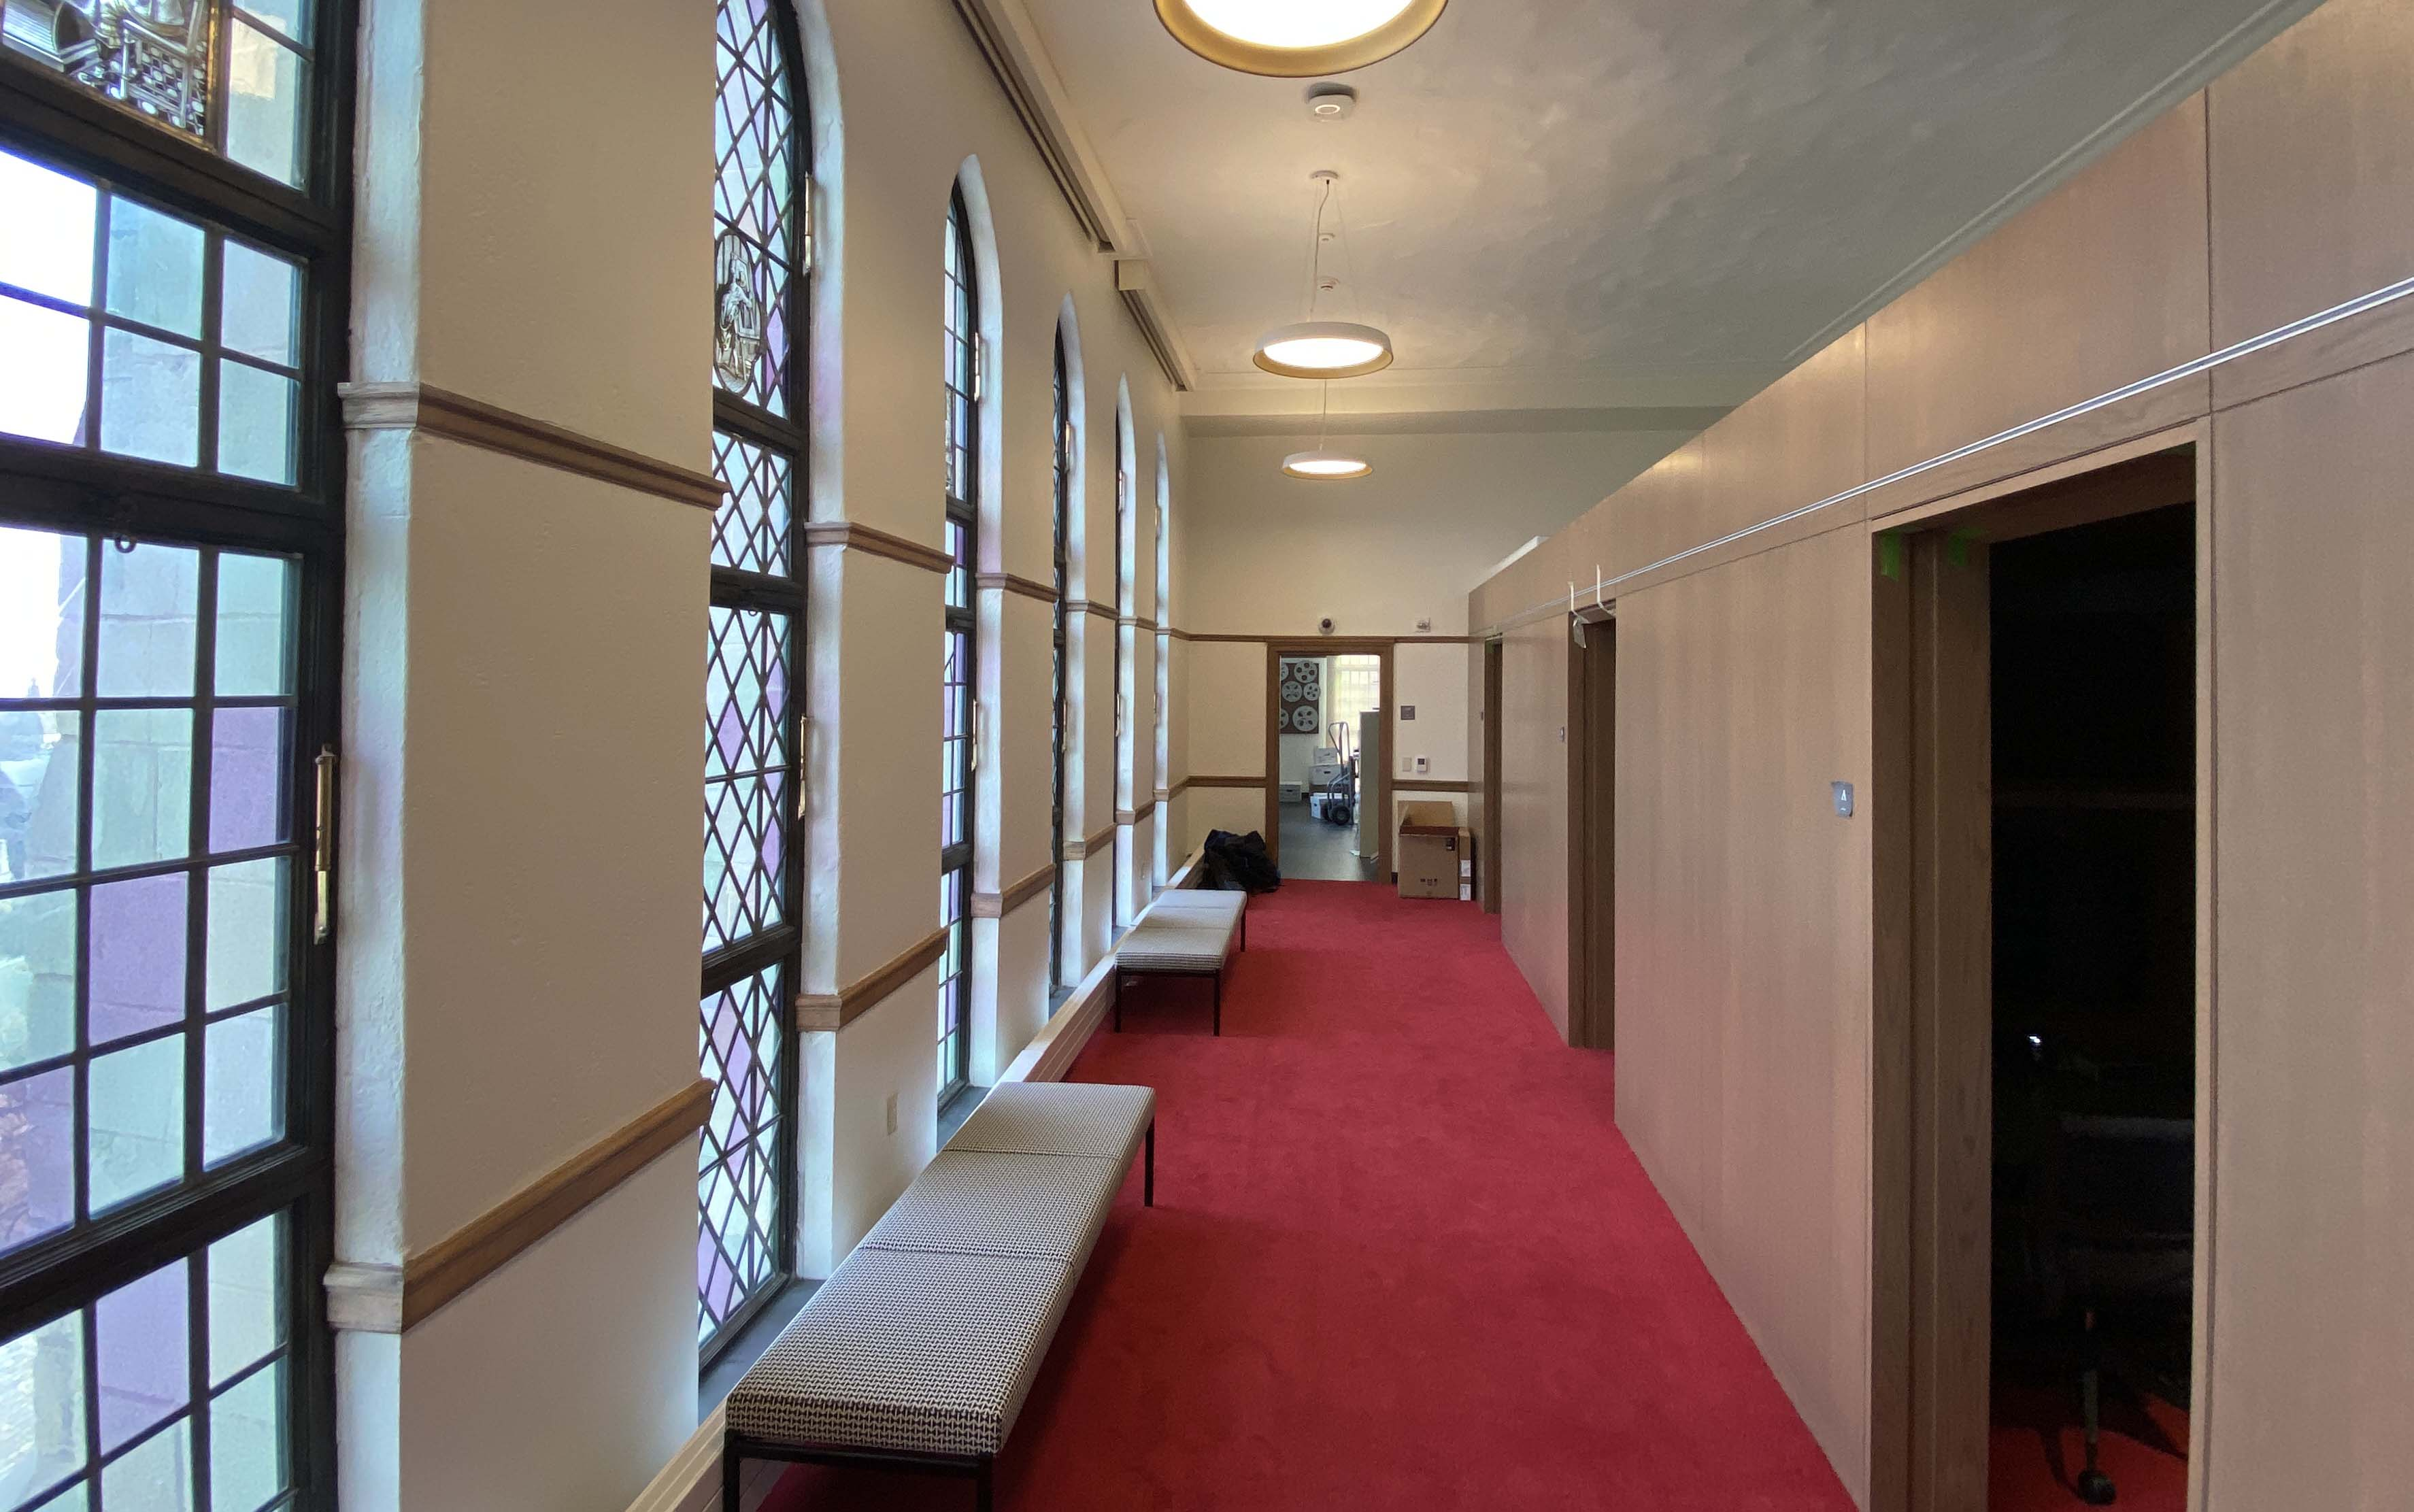 Long corridor with stained glass windows to left and individual viewing booths to the right